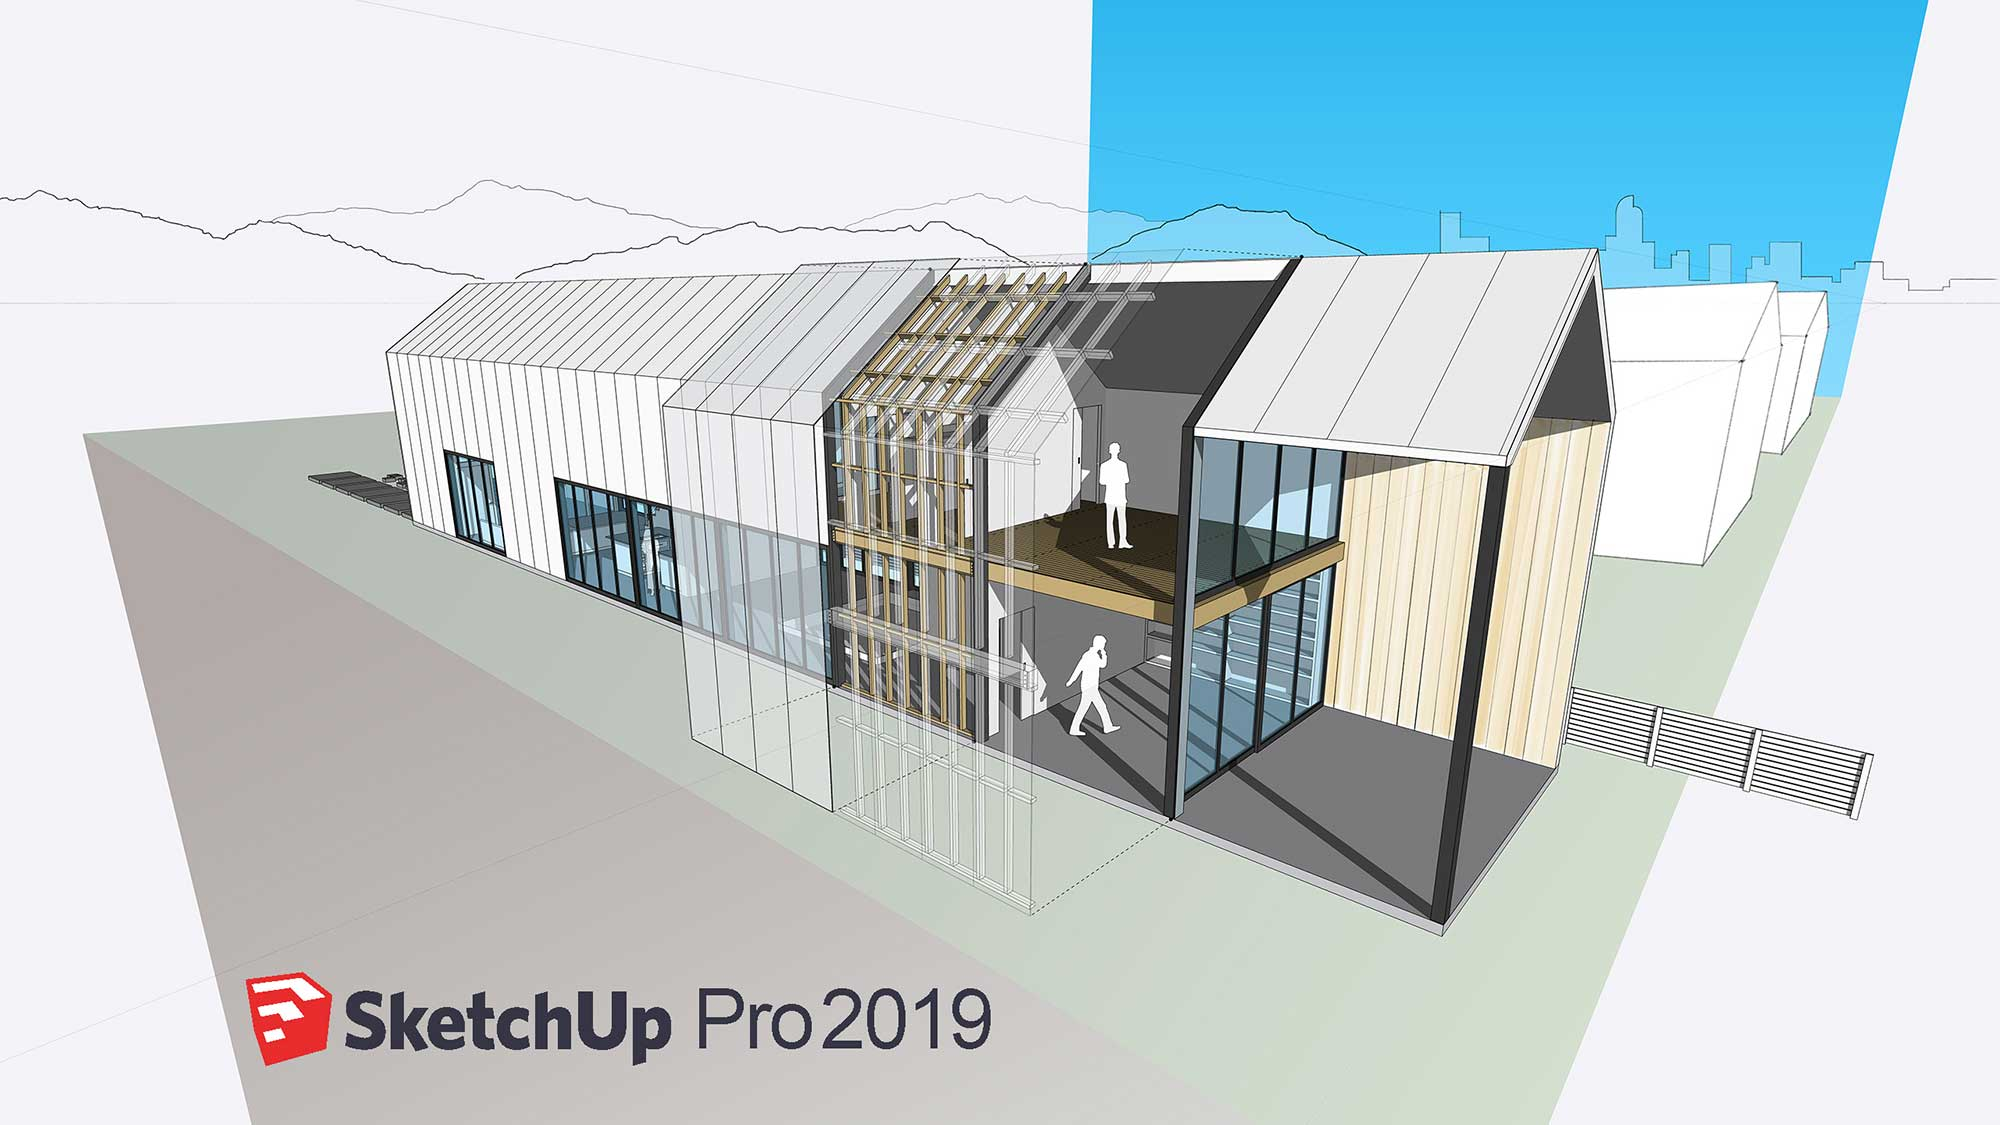 Tải SketchUp 2019 | Download SketchUp Pro 2019 FULL